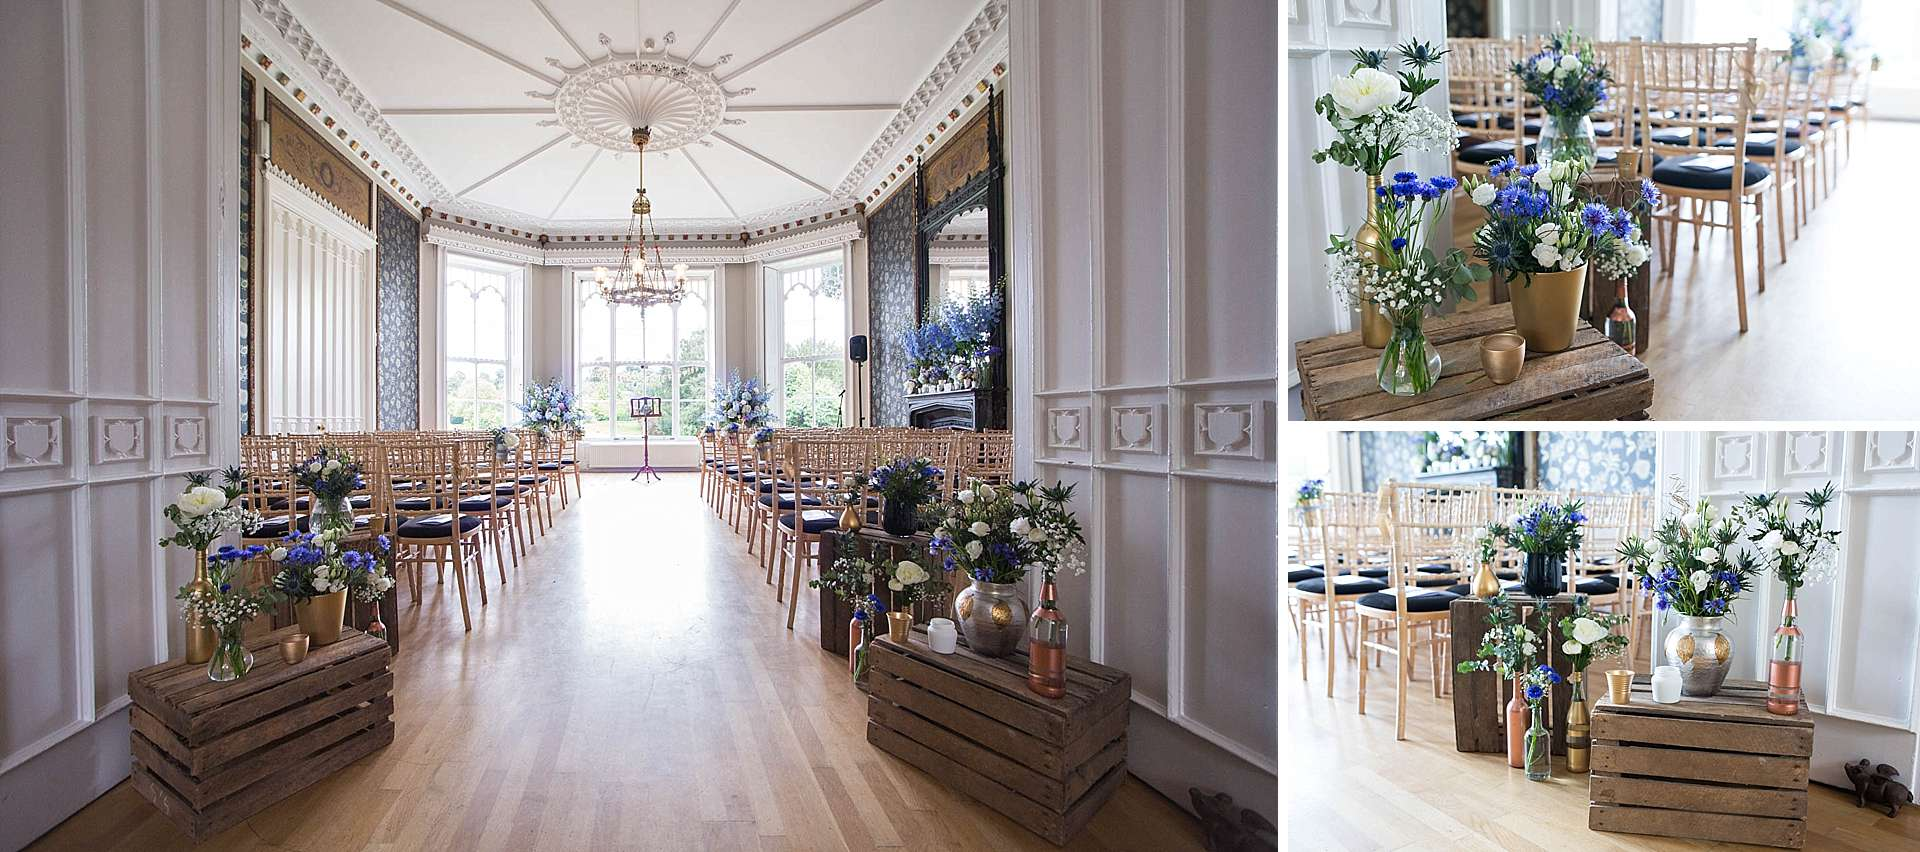 Nonsuch - Orchid Room - Ceremony